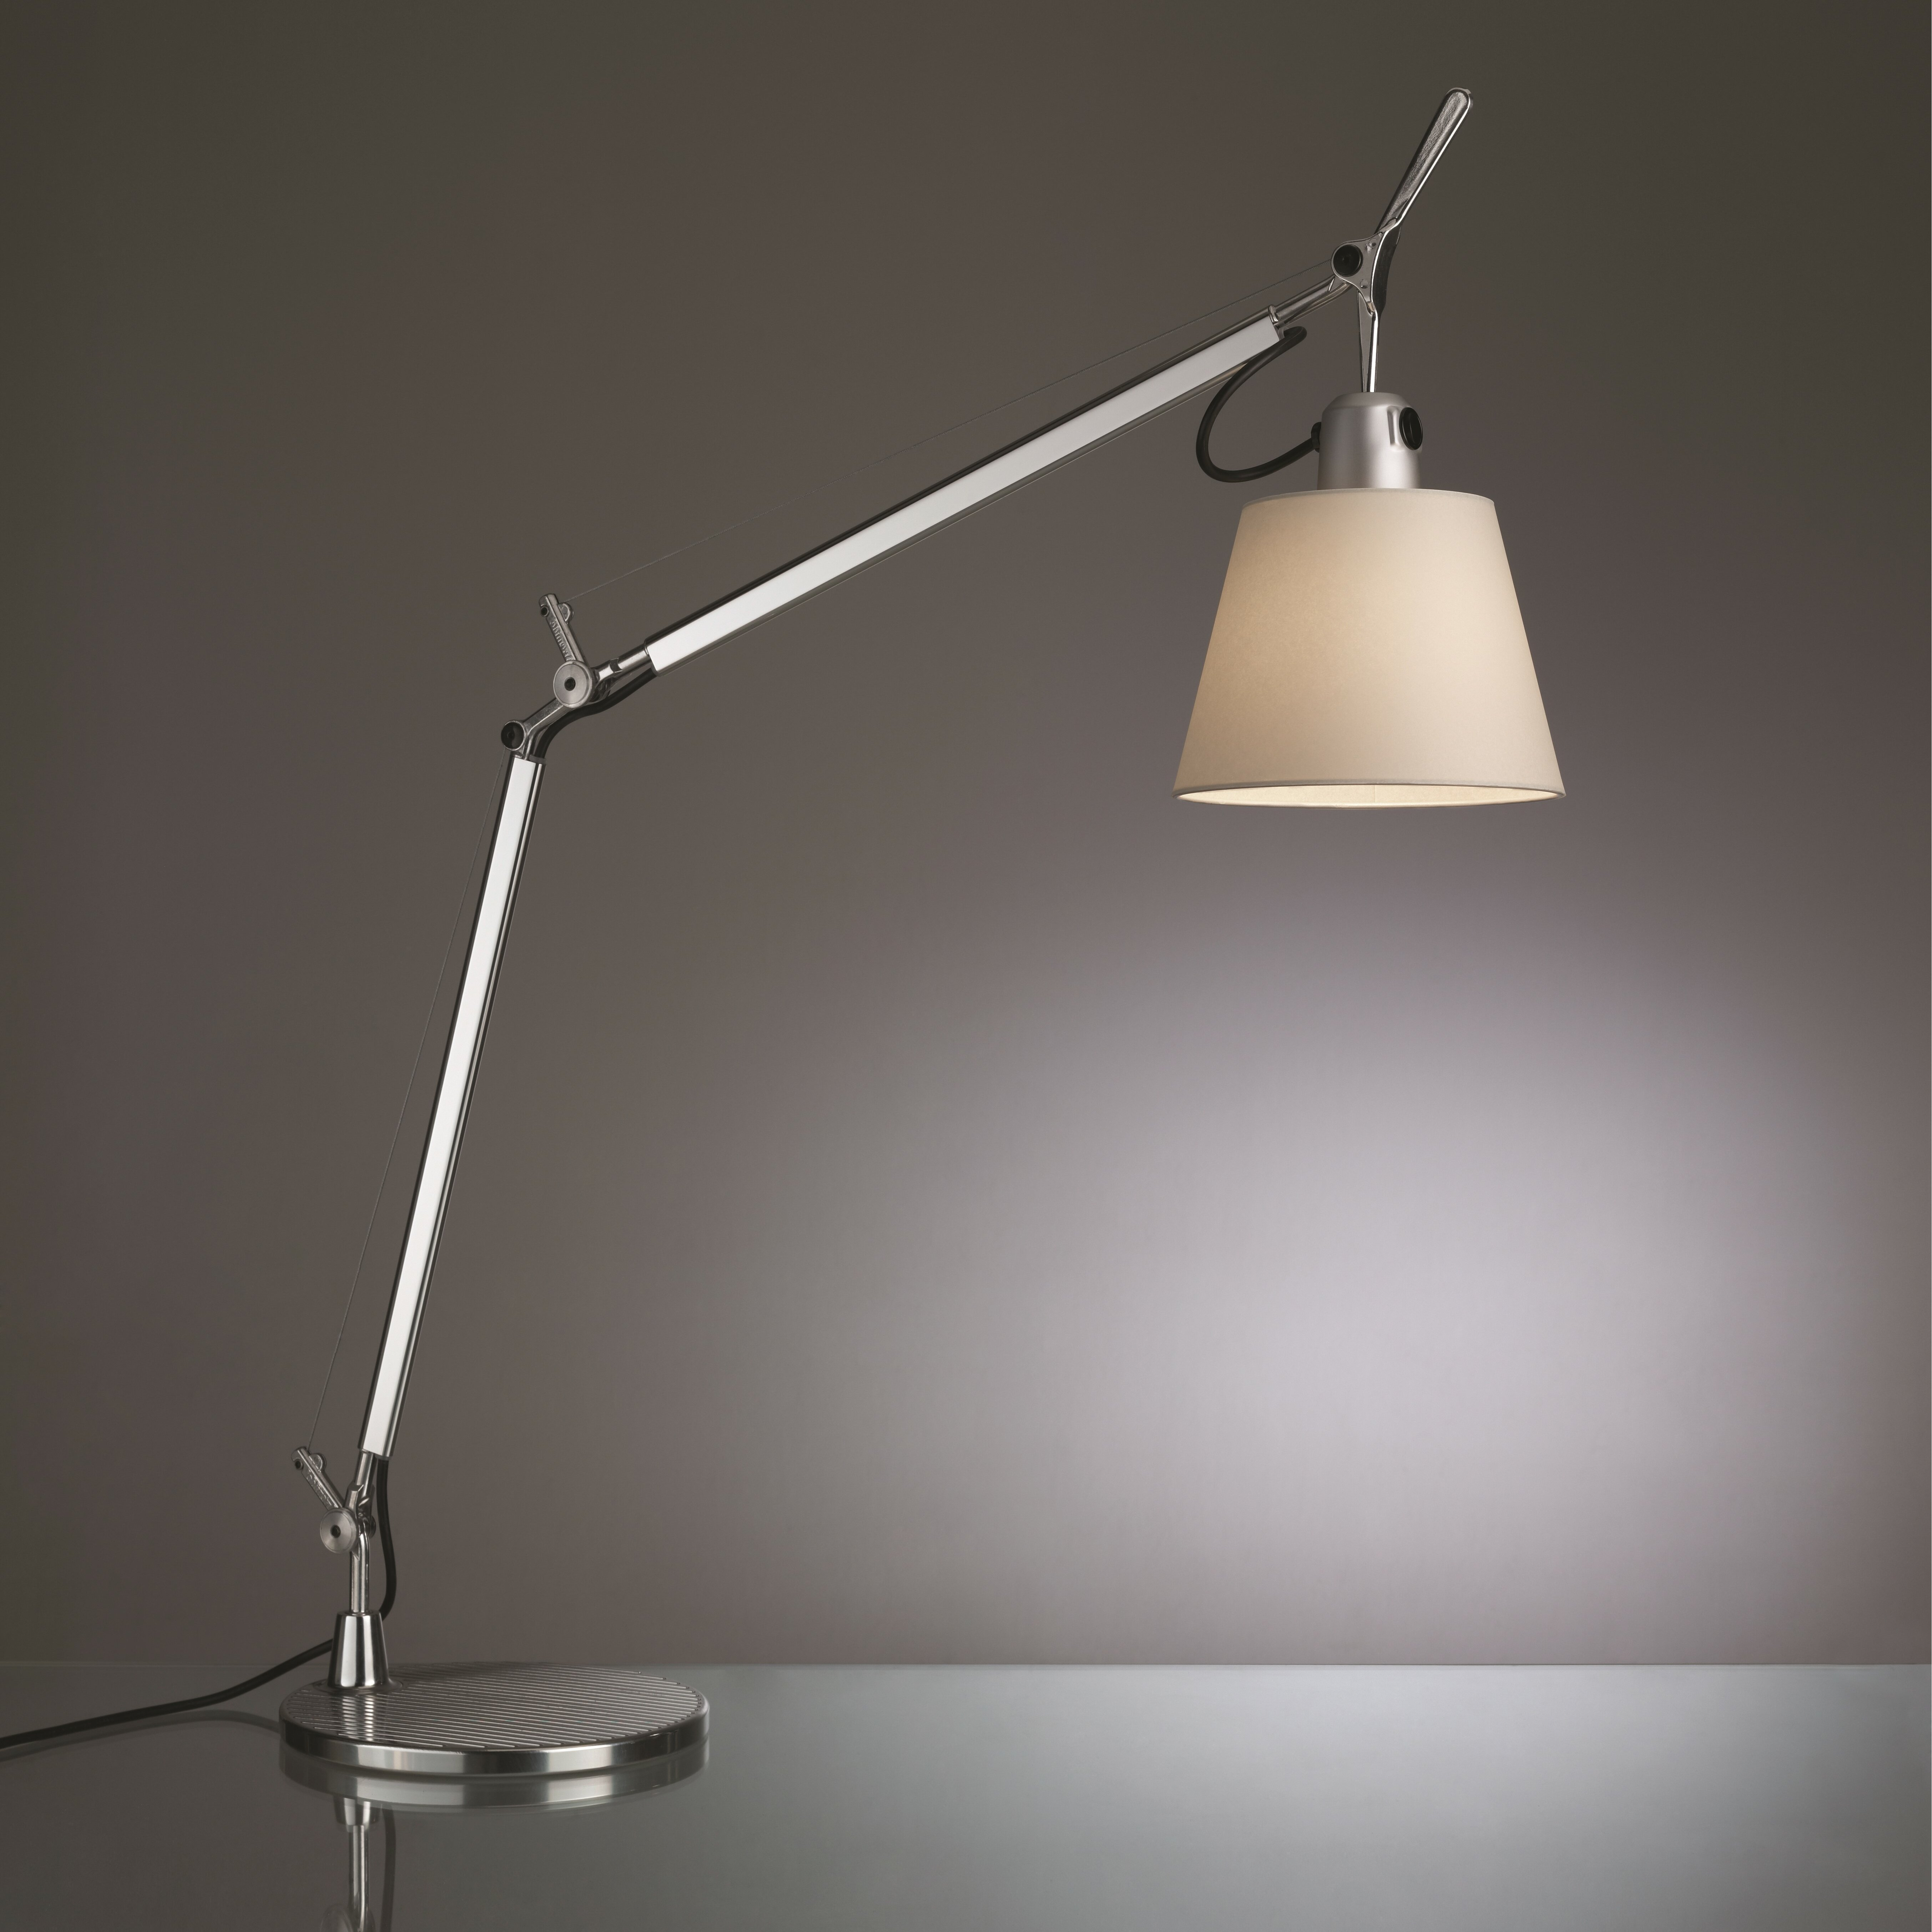 artemide tolomeo classic table lamp reviews. Black Bedroom Furniture Sets. Home Design Ideas